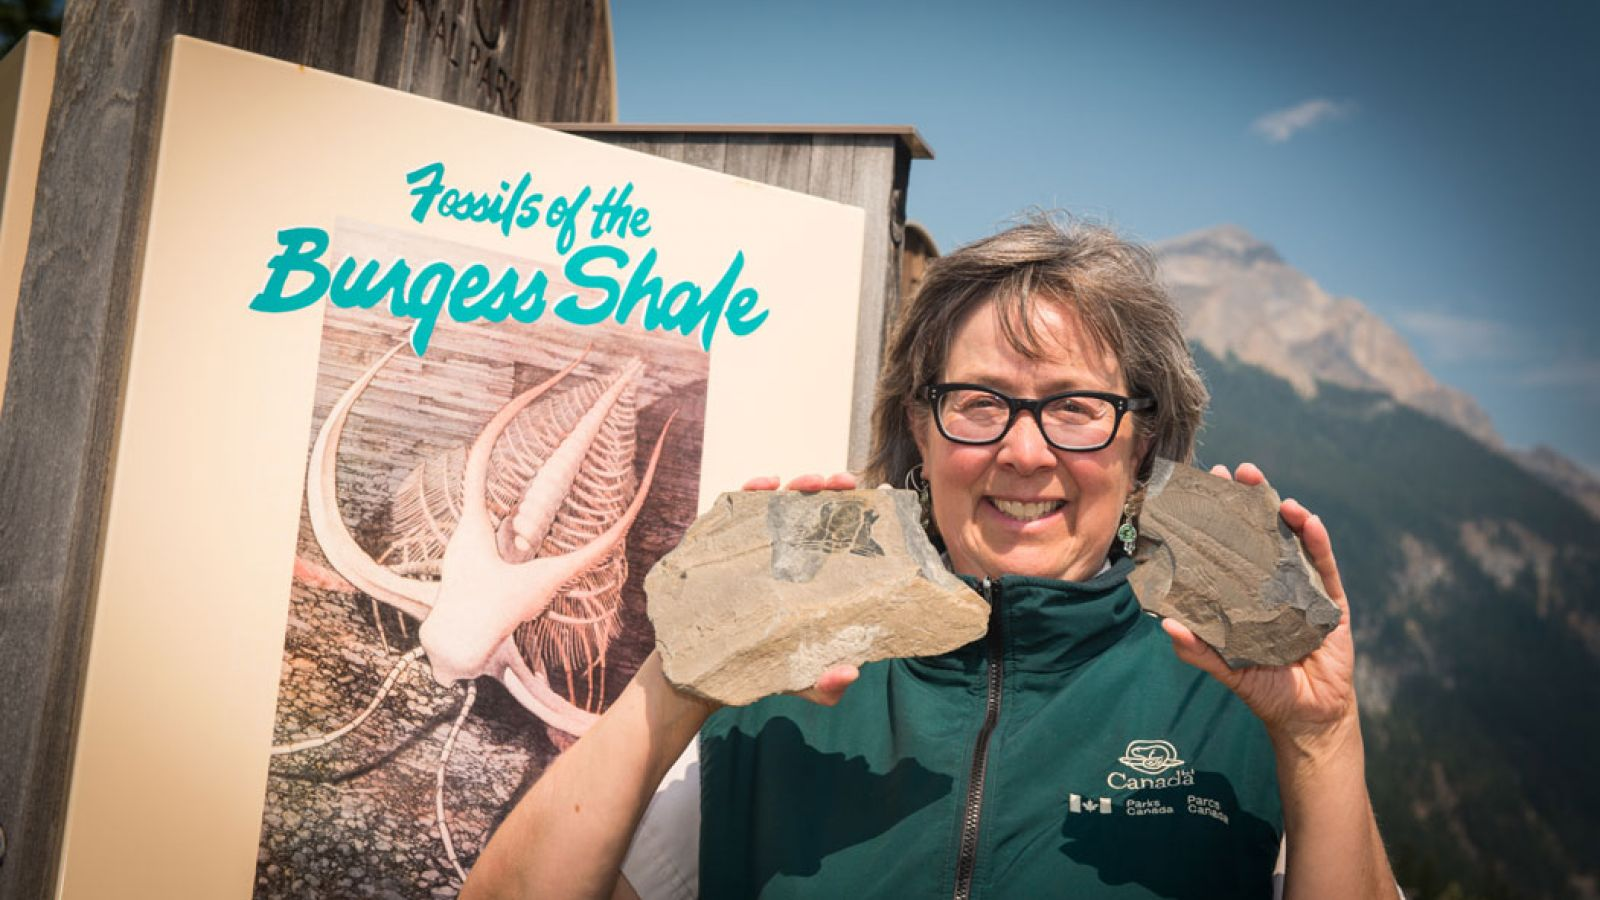 Burgess Shale Guided Hikes.